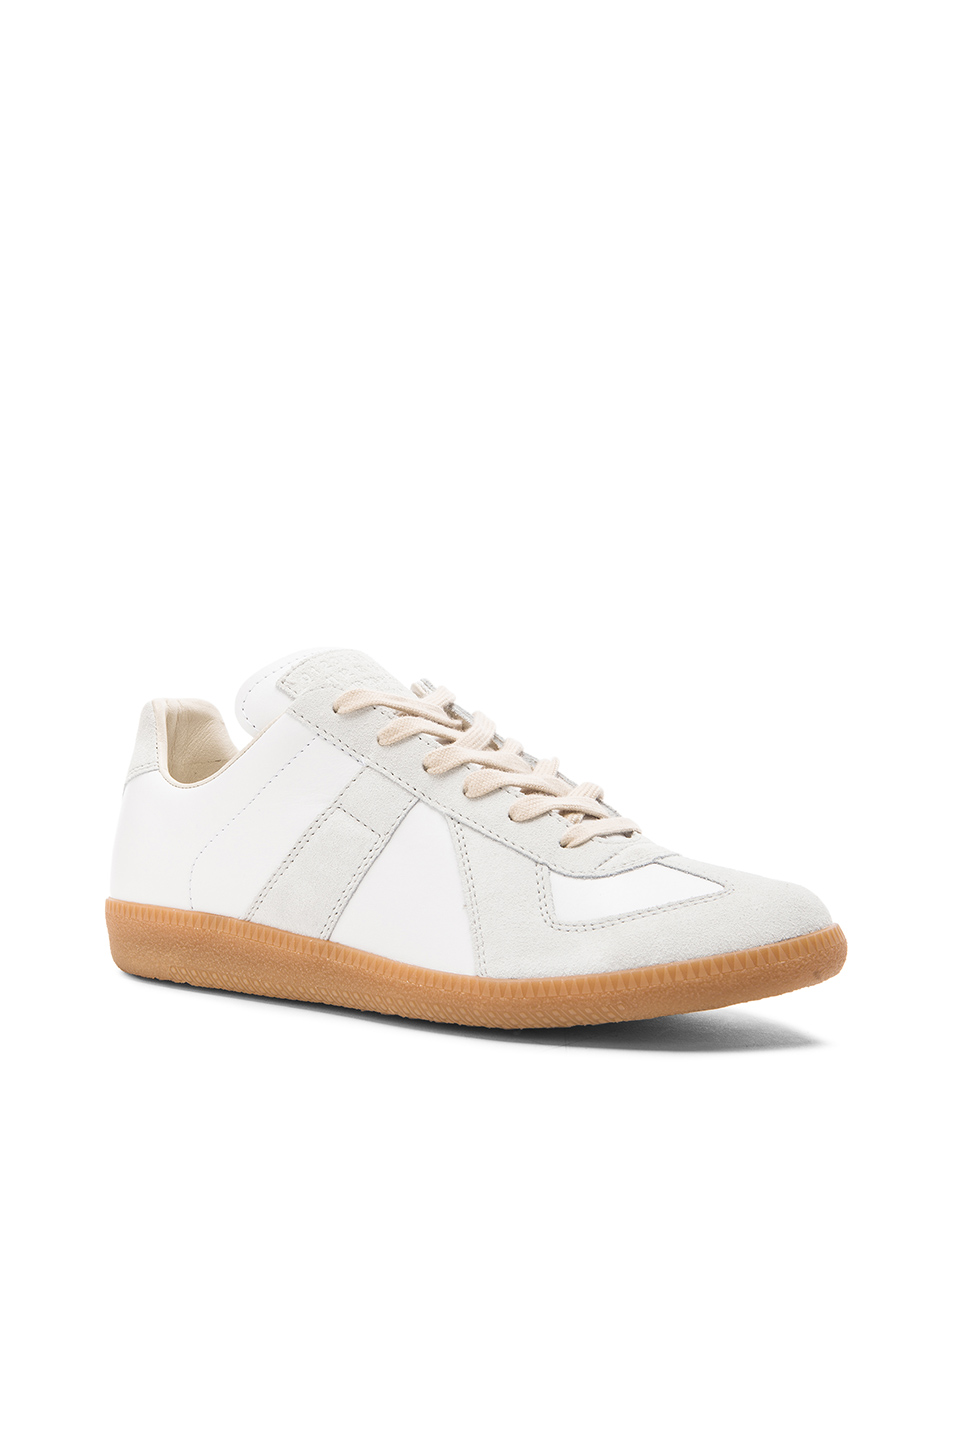 low priced 09f1c 08f53 Replica Calf & Lambskin Leather Sneakers, Maison Margiela